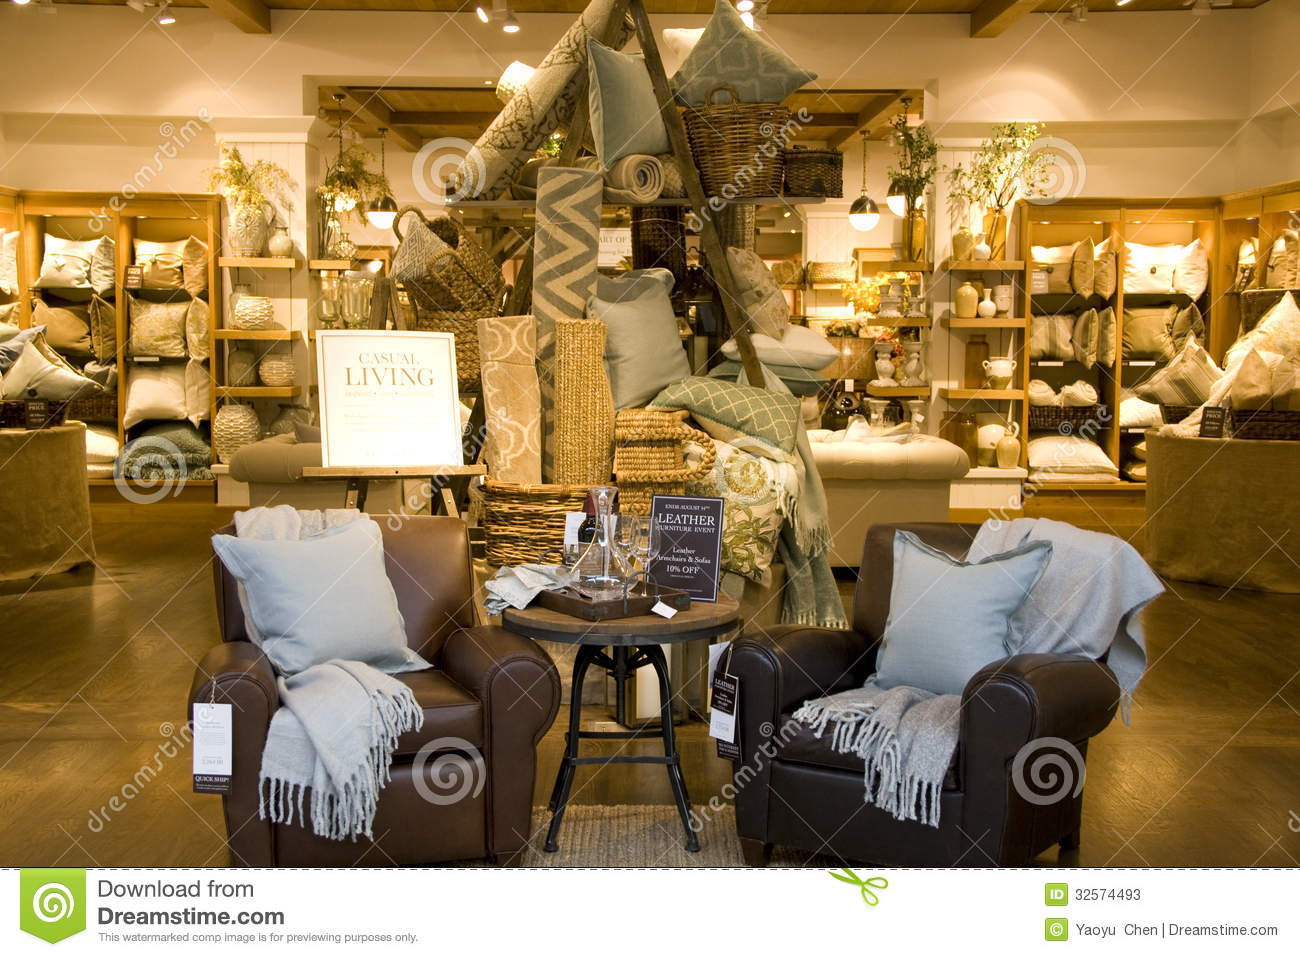 Furniture home decor store editorial stock photo image of light 32574493 - Home furnishing stores ...